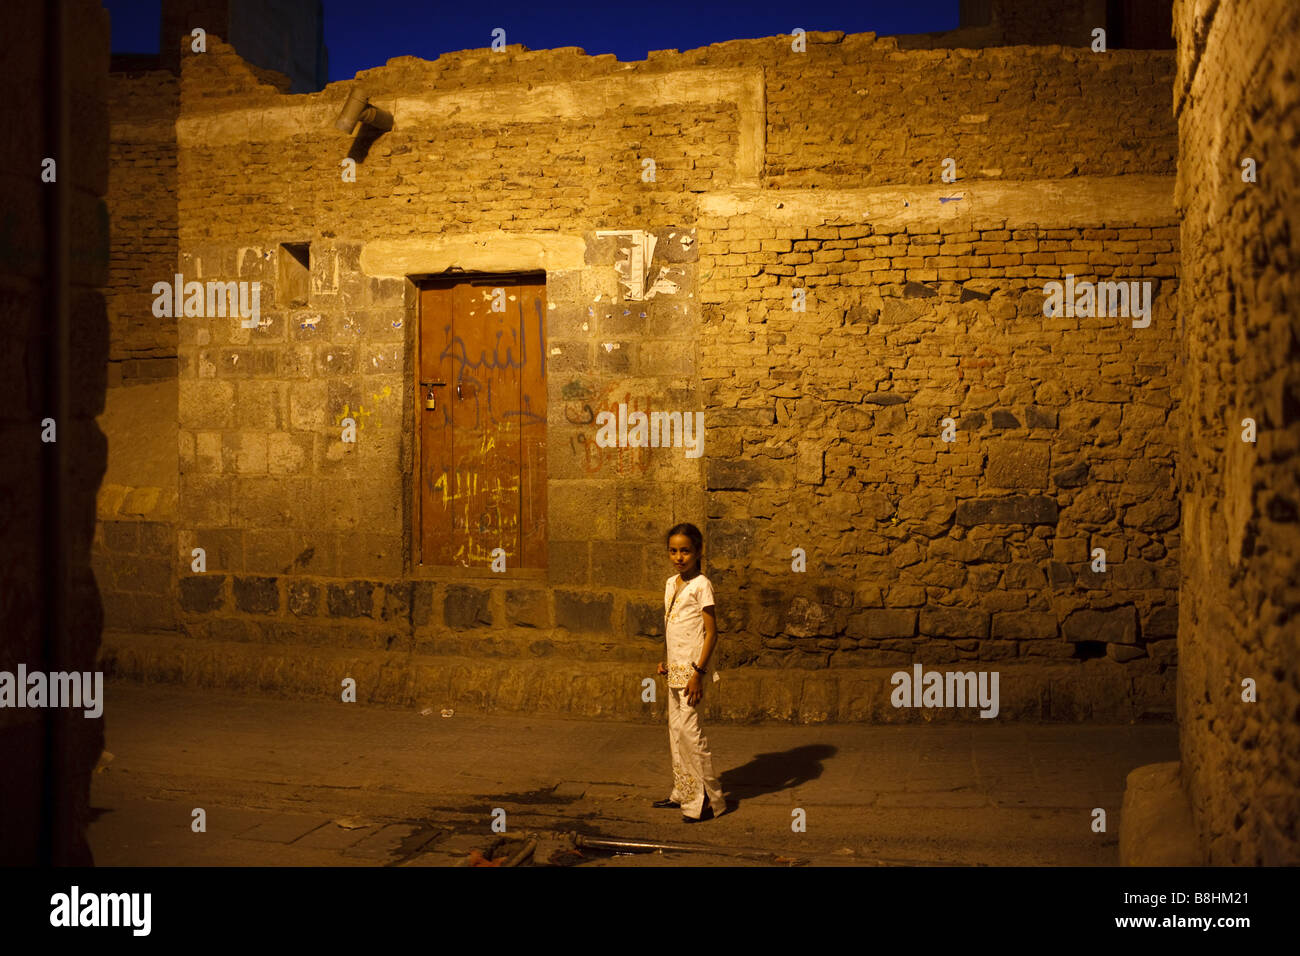 A portrait of a girl at night in the Old City of Sana'a in Yemen - Stock Image